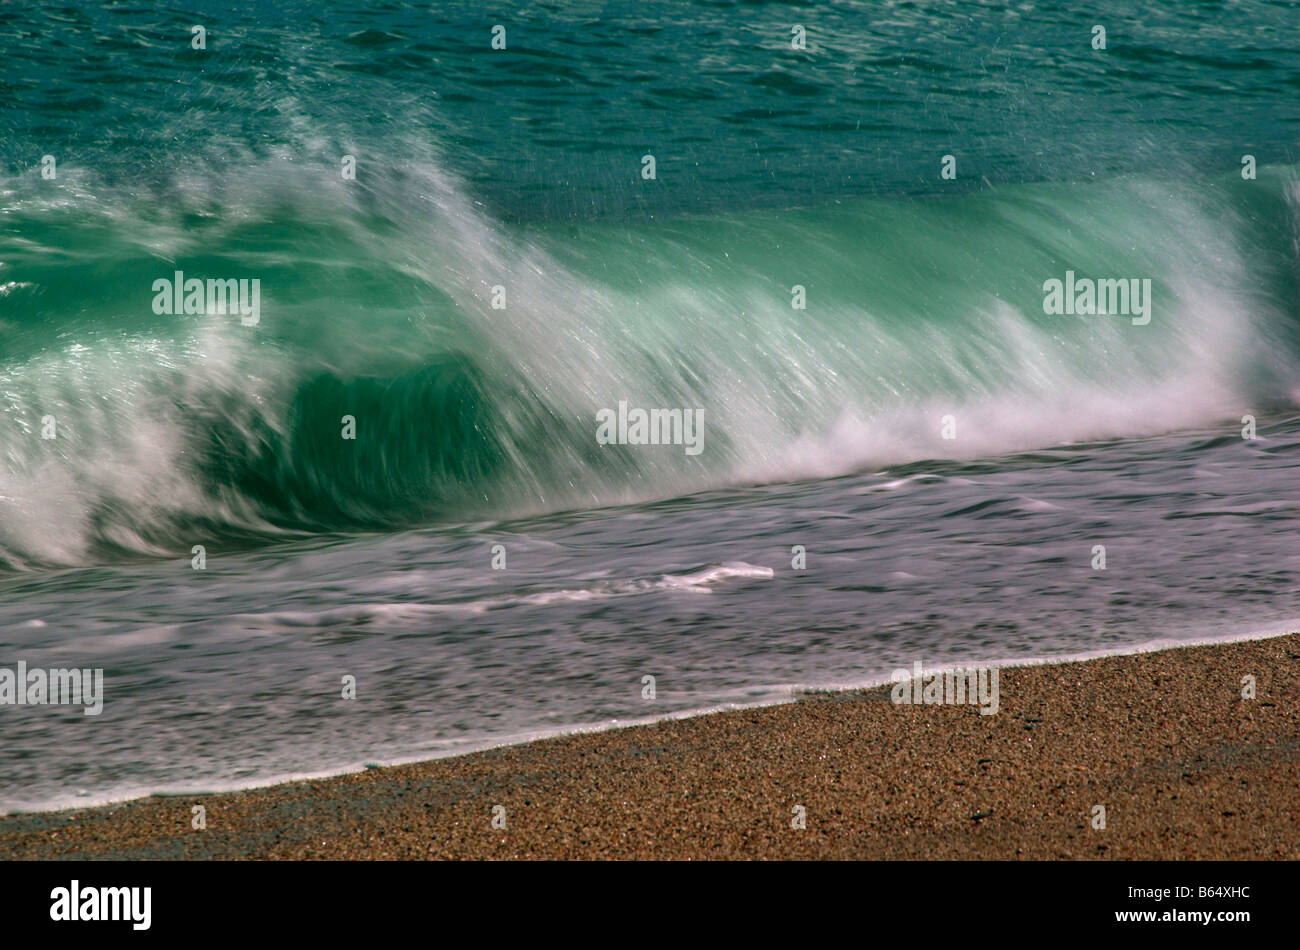 A wave breaking on a beach - Stock Image